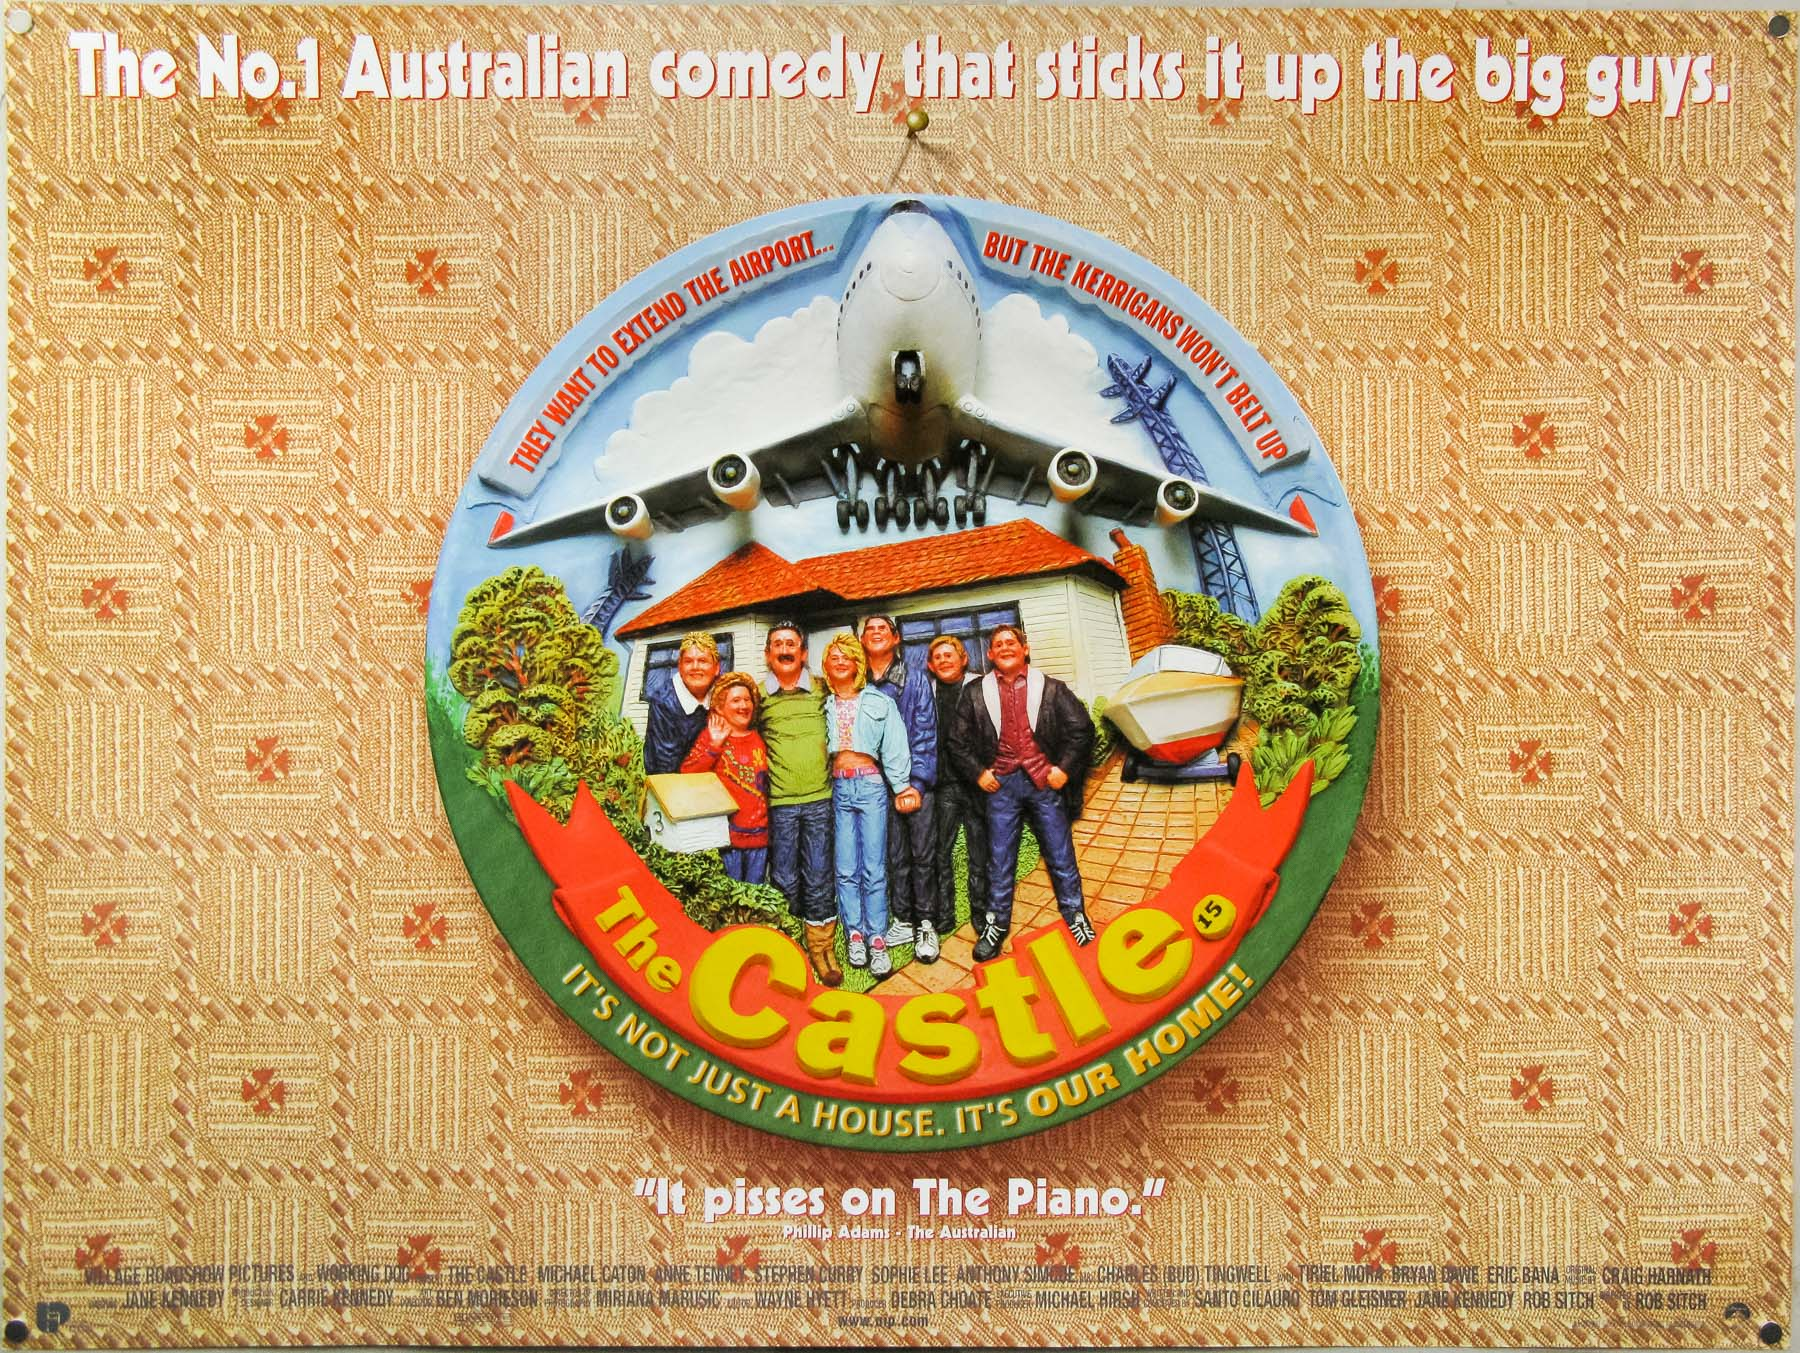 The UK quad for The Castle, designed by Steve Laws and Brian Bysouth, 1997. Brian designed and sculpted an actual plate that was then photographed for the poster.